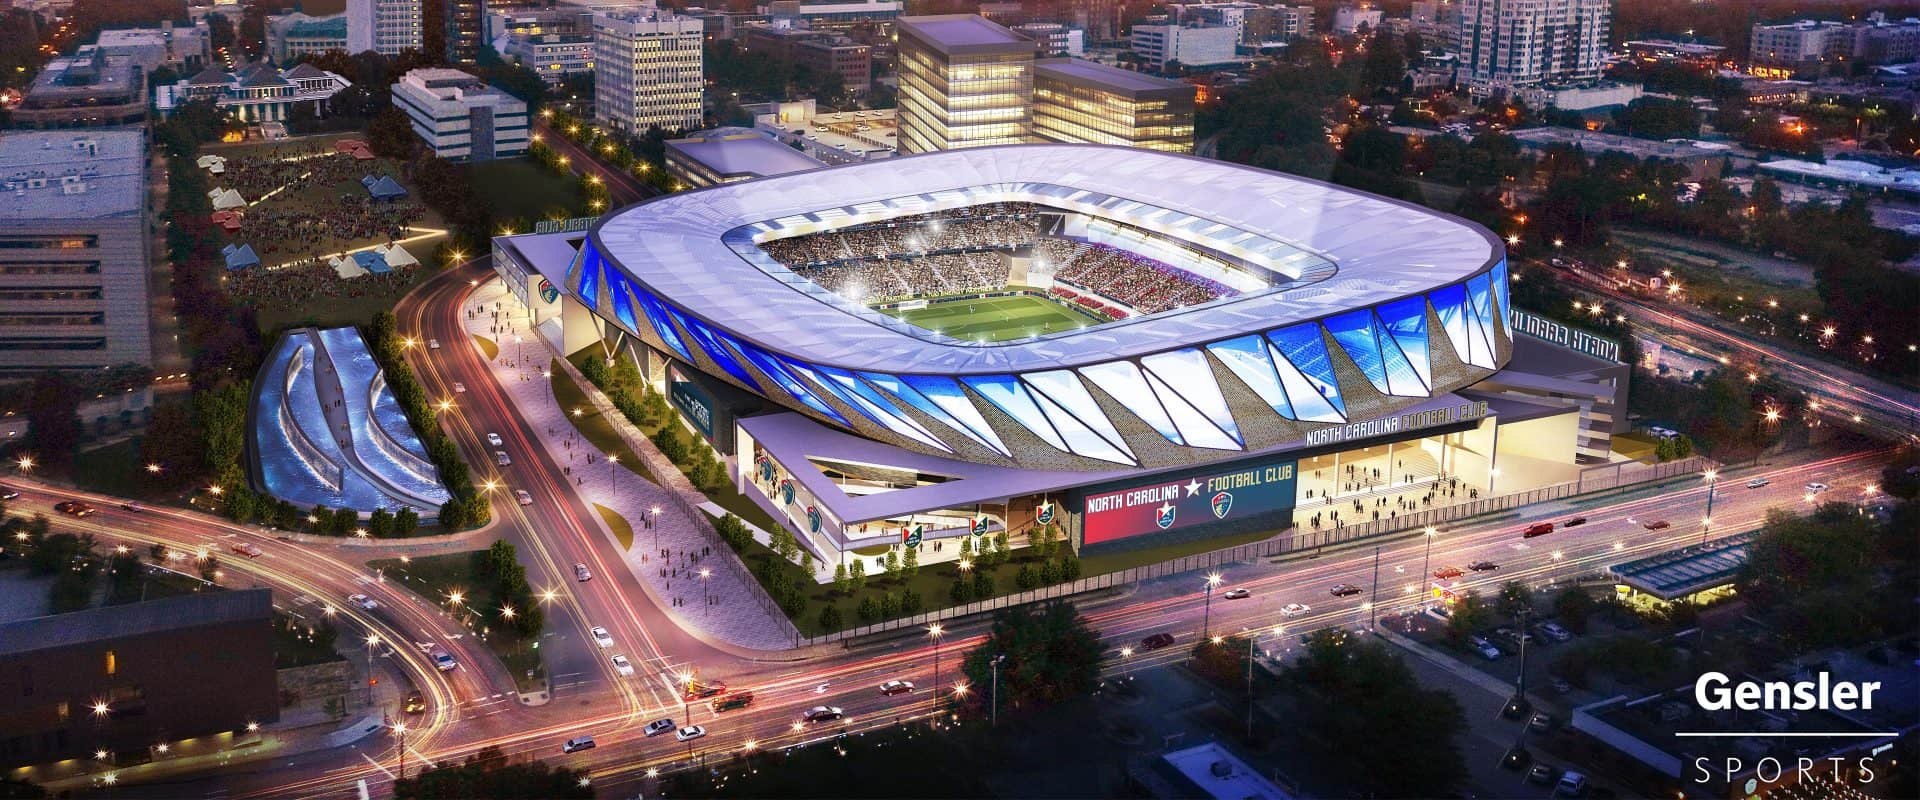 Mock-up image of MLS stadium in Downtown Raleigh.